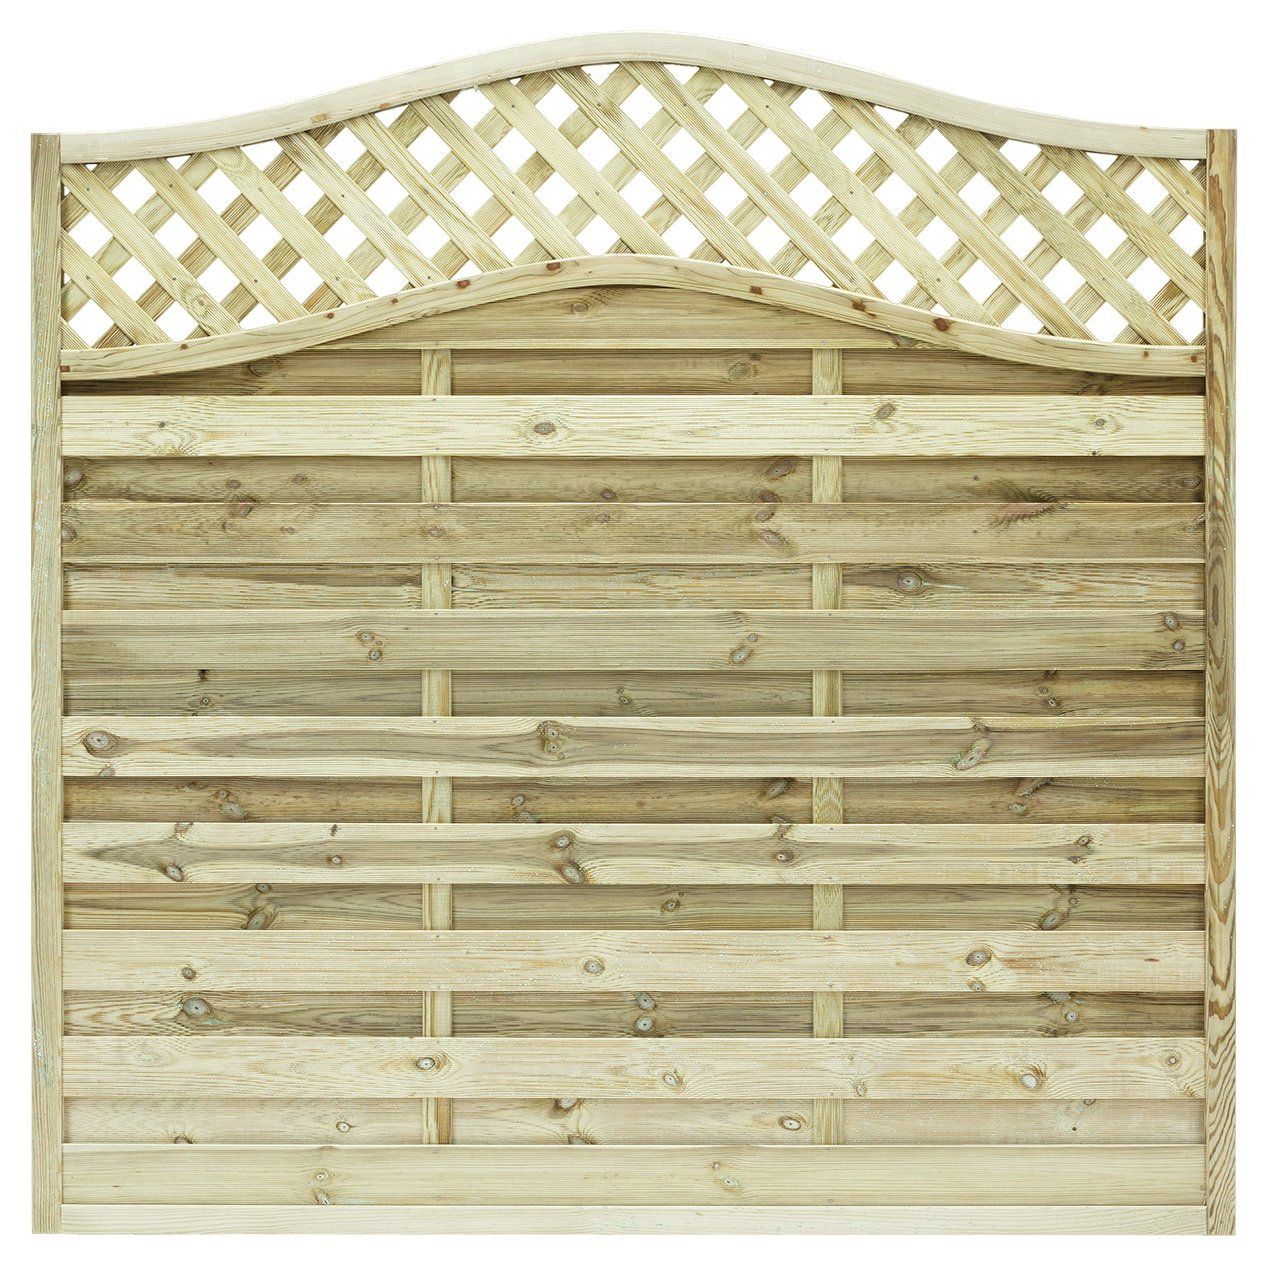 Grange 1.8m Elite St Meloir Fence Panel - Pack of 5. lowest price